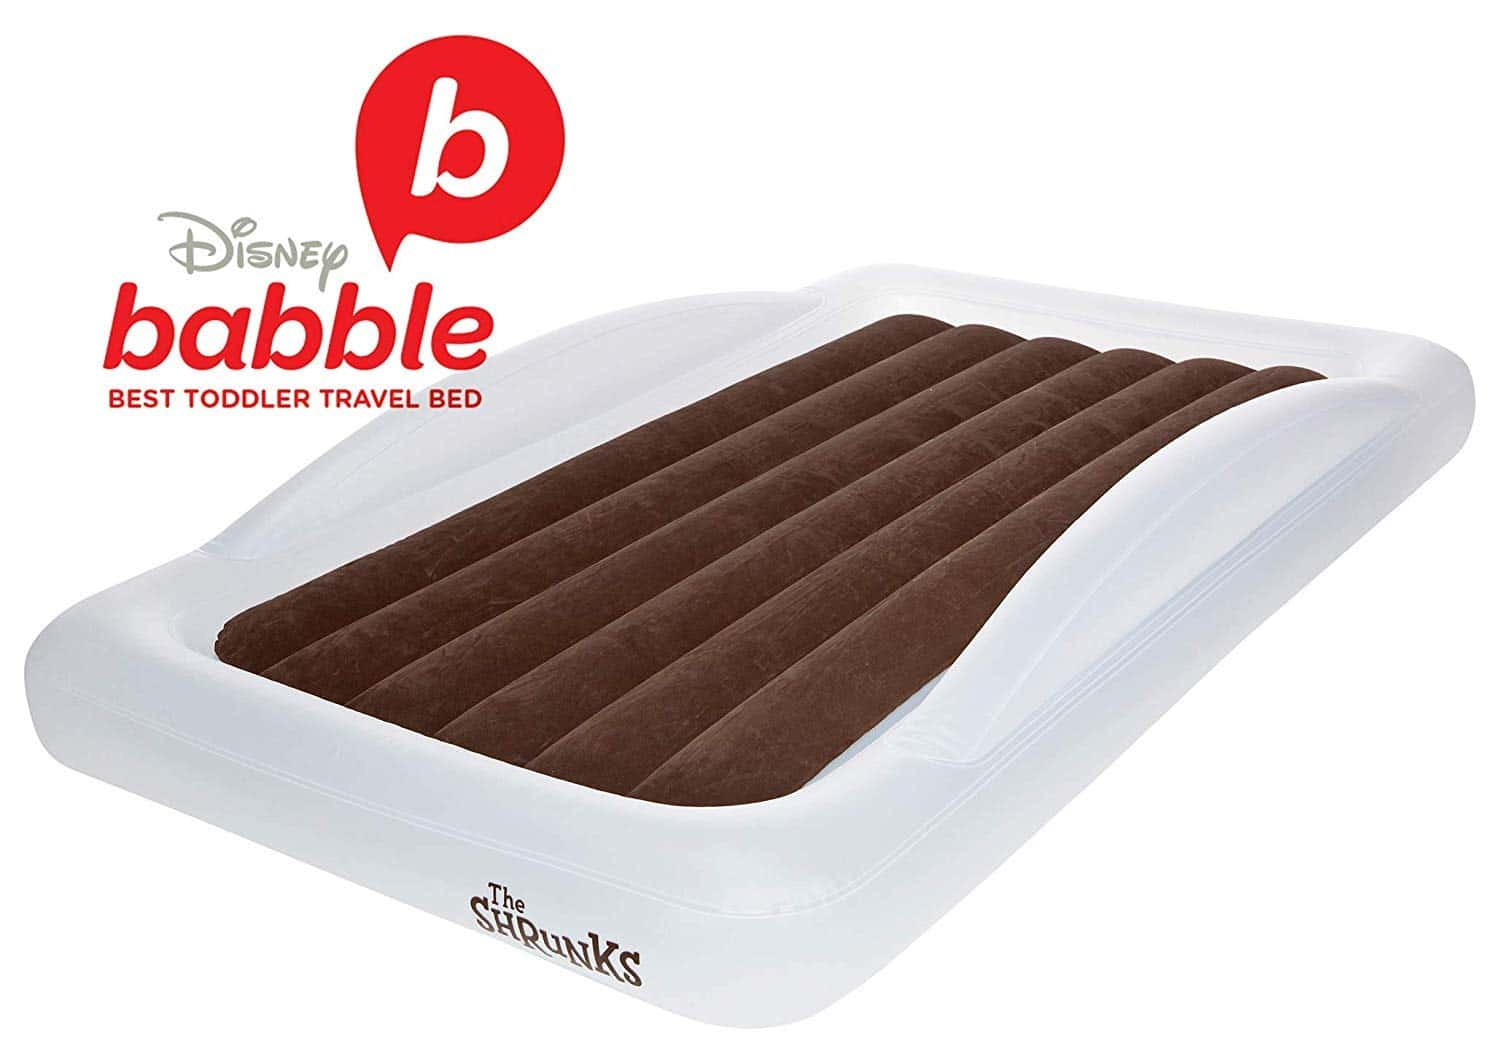 The Shrunks Toddler Air Mattress Bed